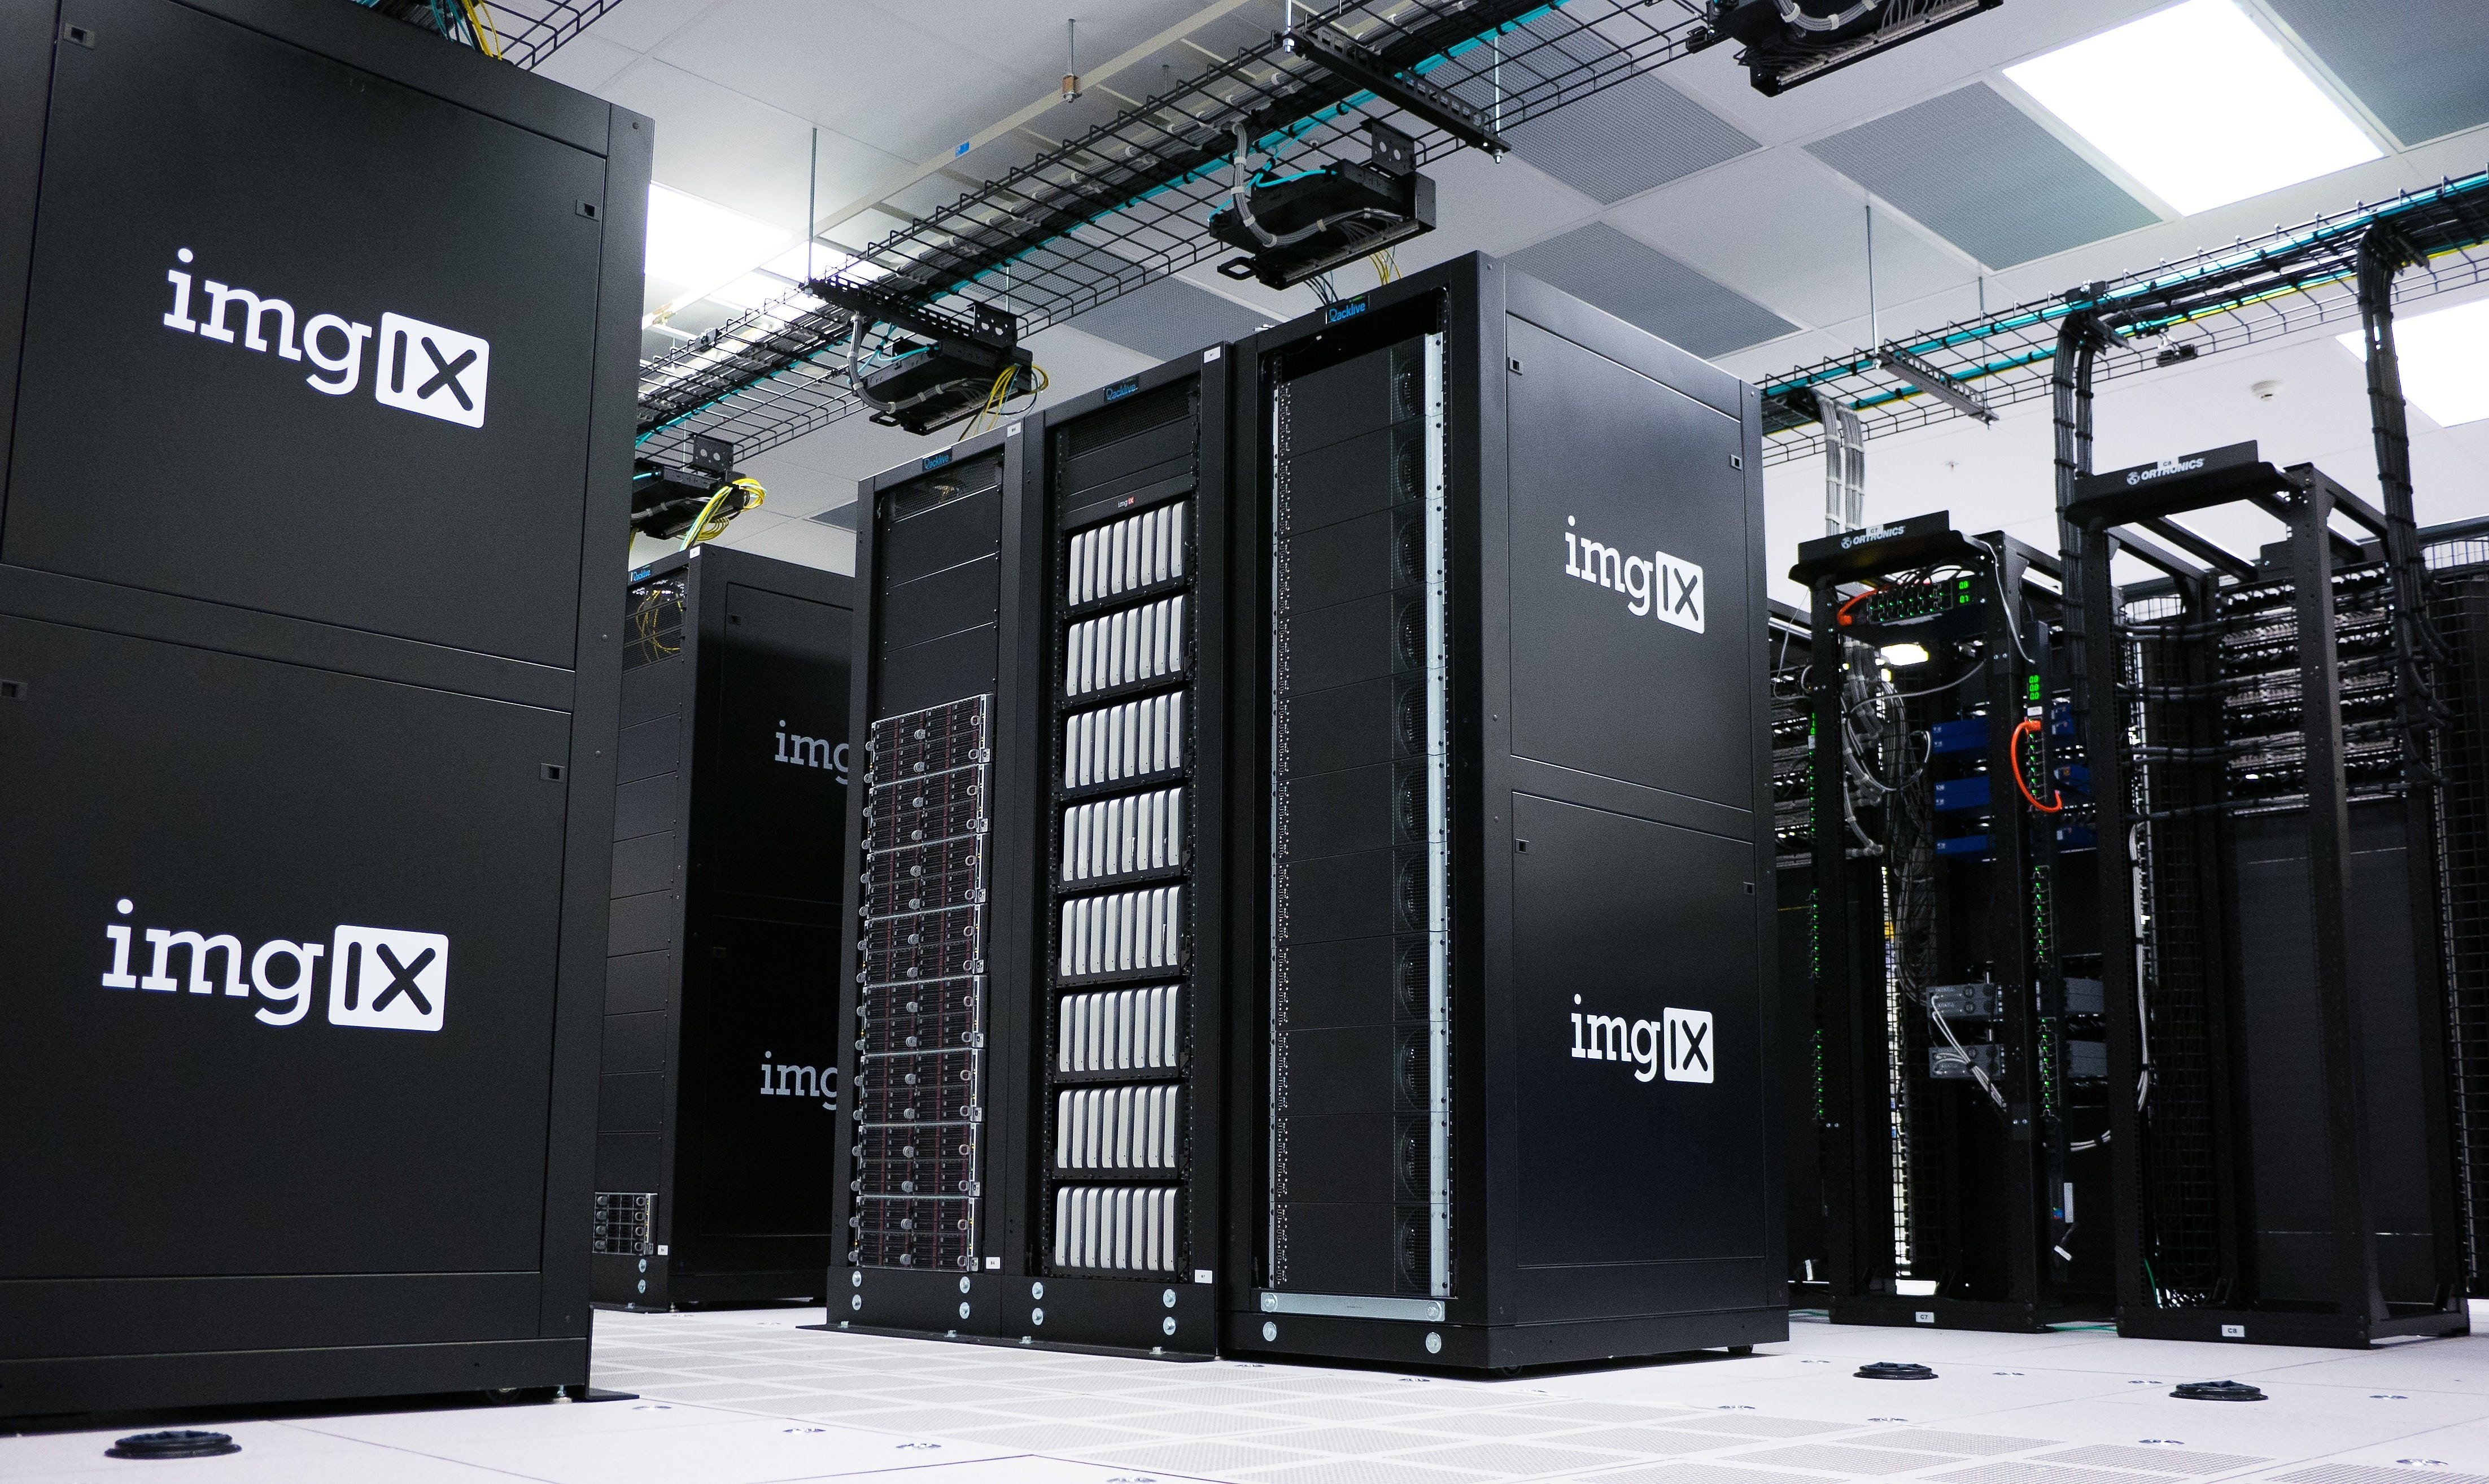 Large black imgIX servers in a server room